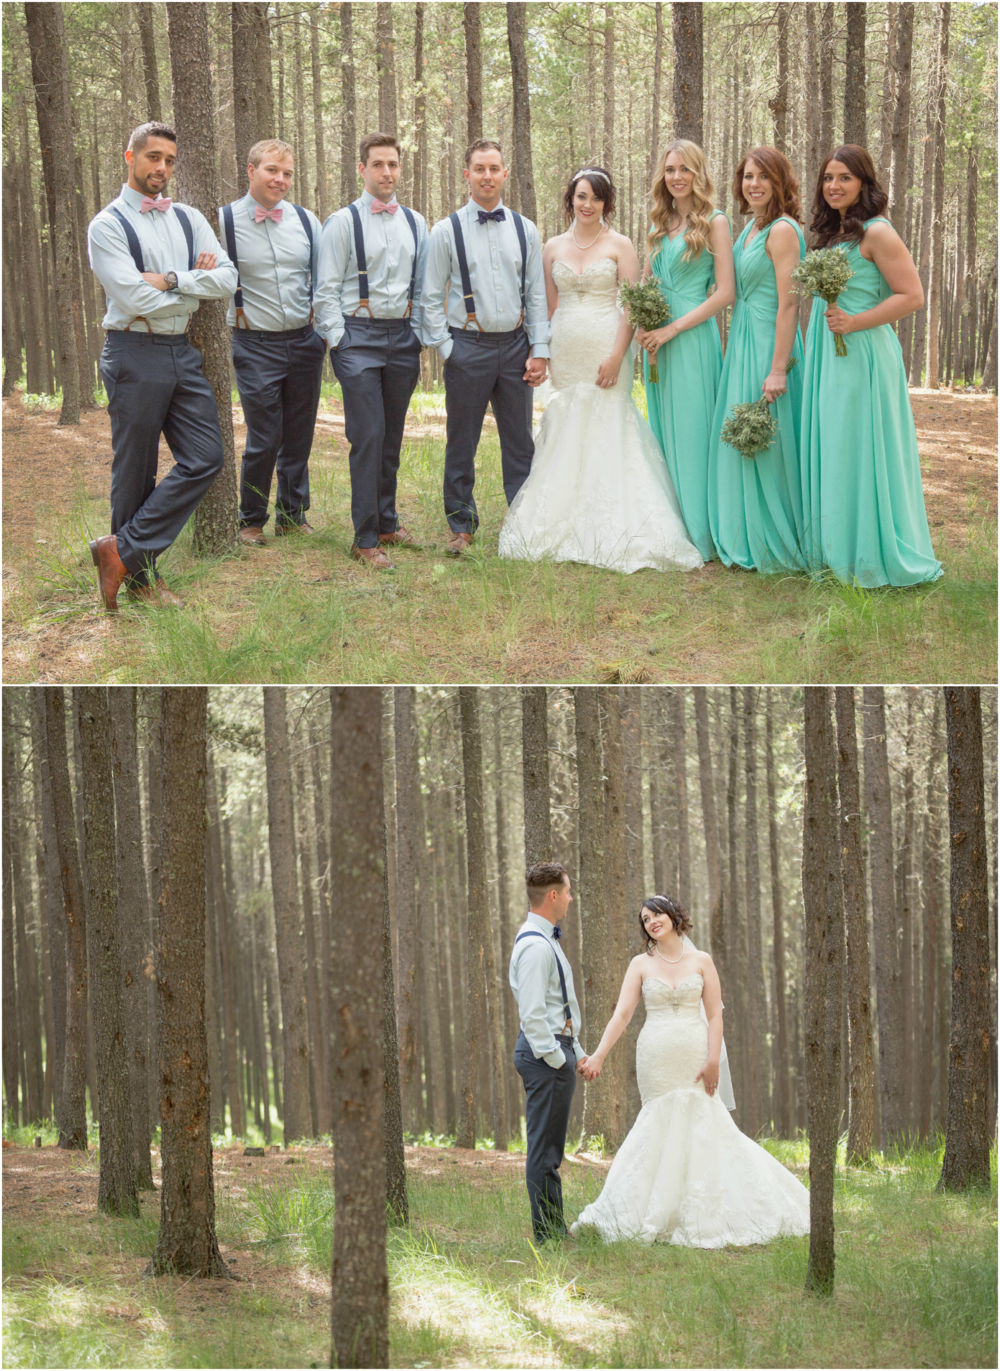 elkwater_wedding_photography_28.png